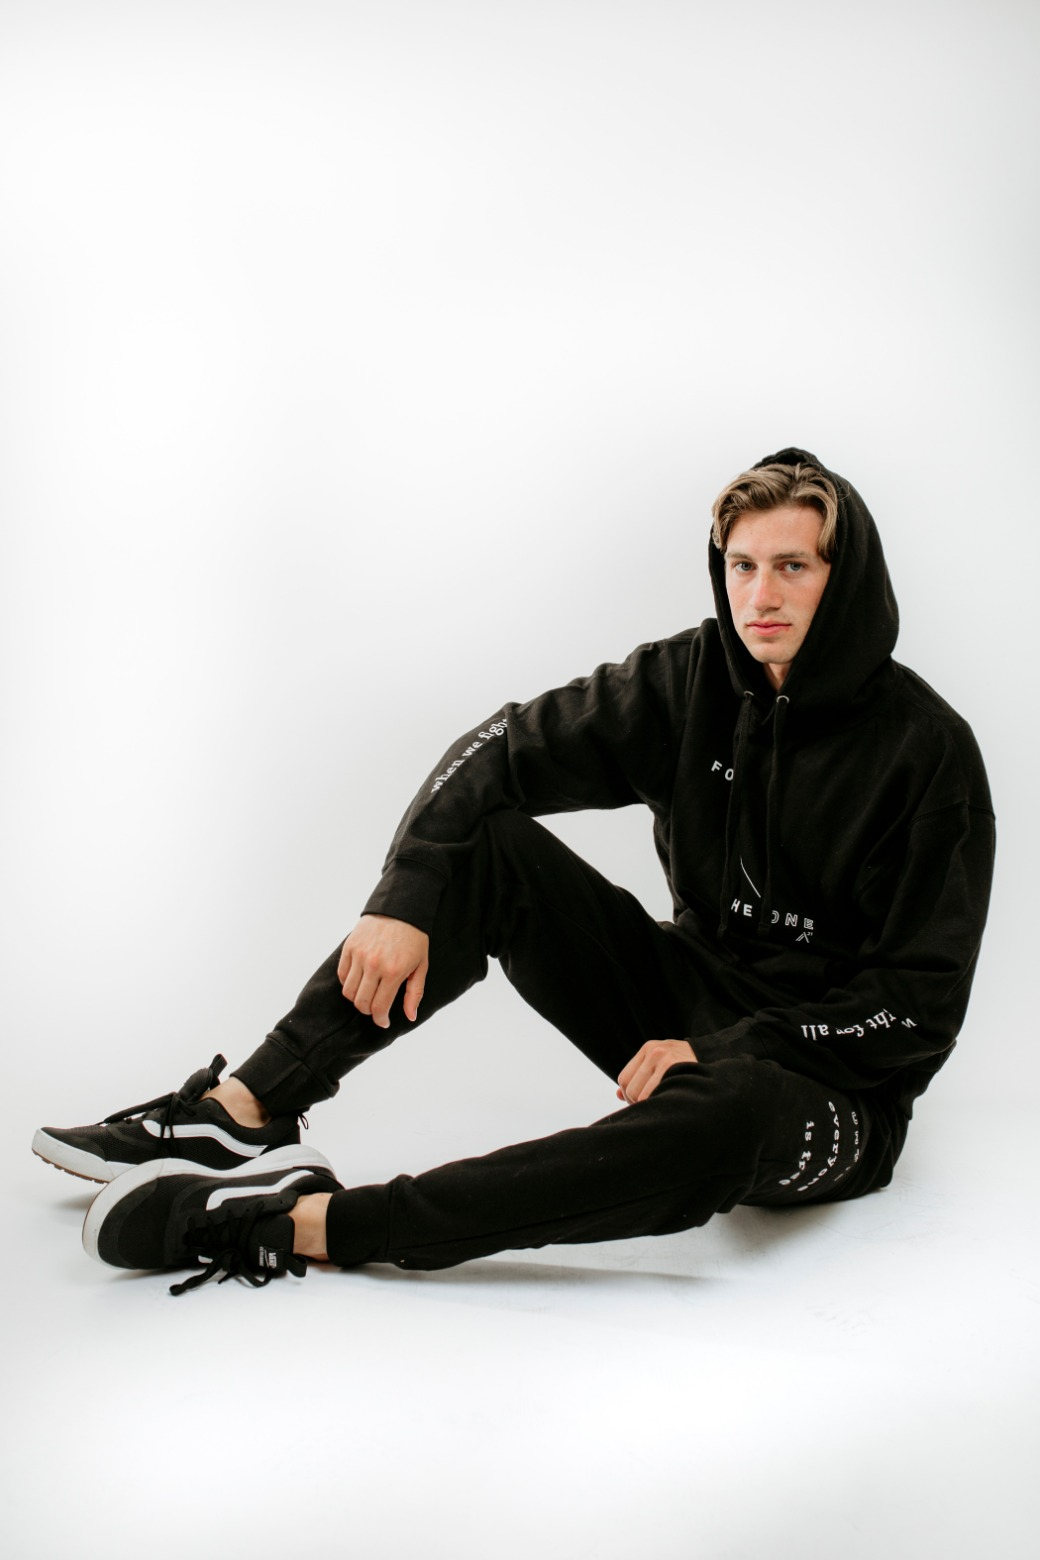 Tracksuit: Sweatshirt and Trackpants: For The ONE 2